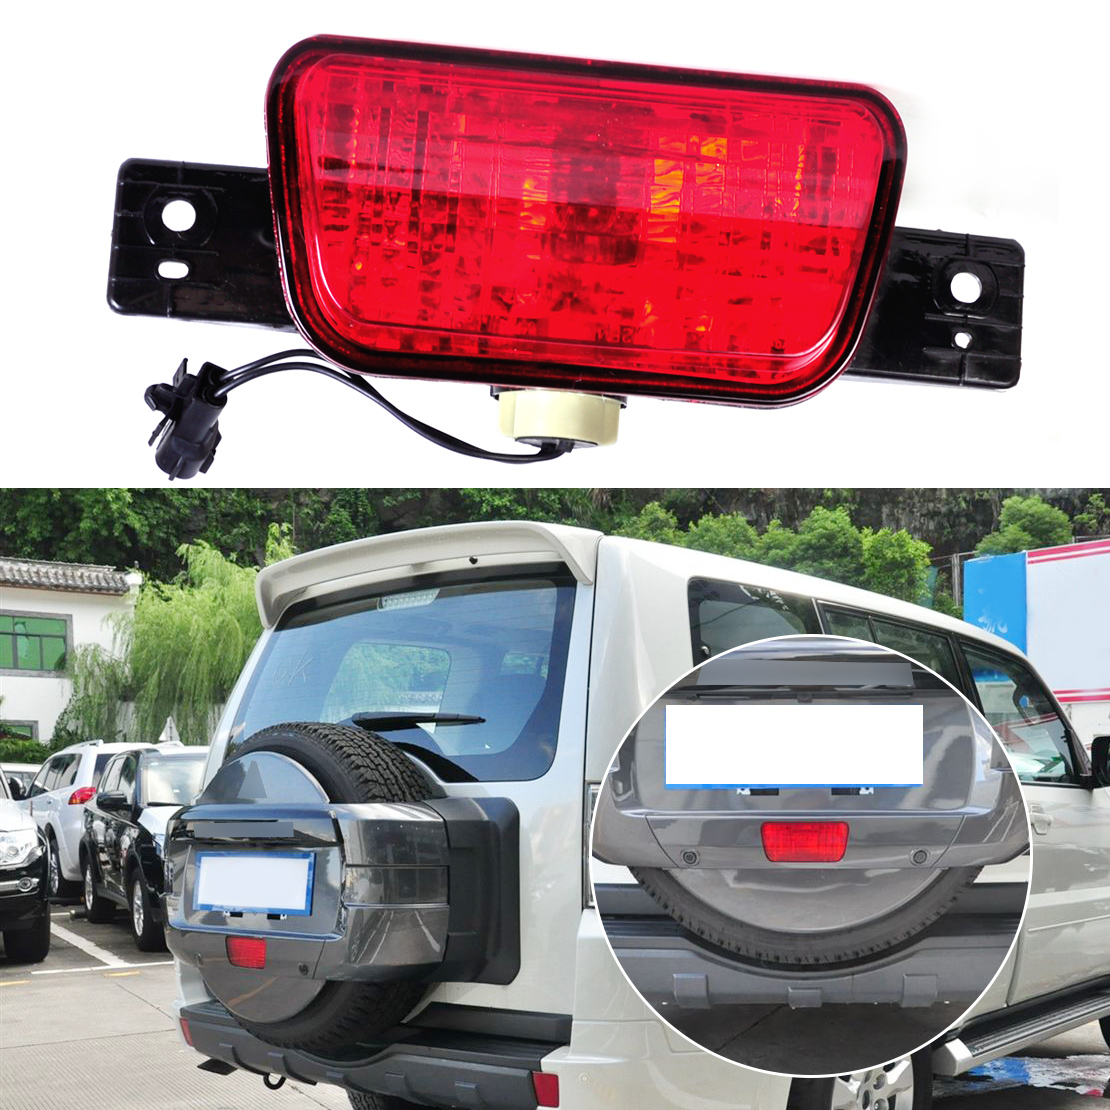 DWCX Rear Spare Tire Lamp Tail Bumper Light Fog Lamp for Mitsubishi Pajero Shogun 2007 2008 2009 2010 2011 2012 2013 2014 2015 rear fog lamp spare tire cover tail bumper light fit for mitsubishi pajero shogun v87 v93 v97 2007 2008 2009 2010 2011 2012 2015